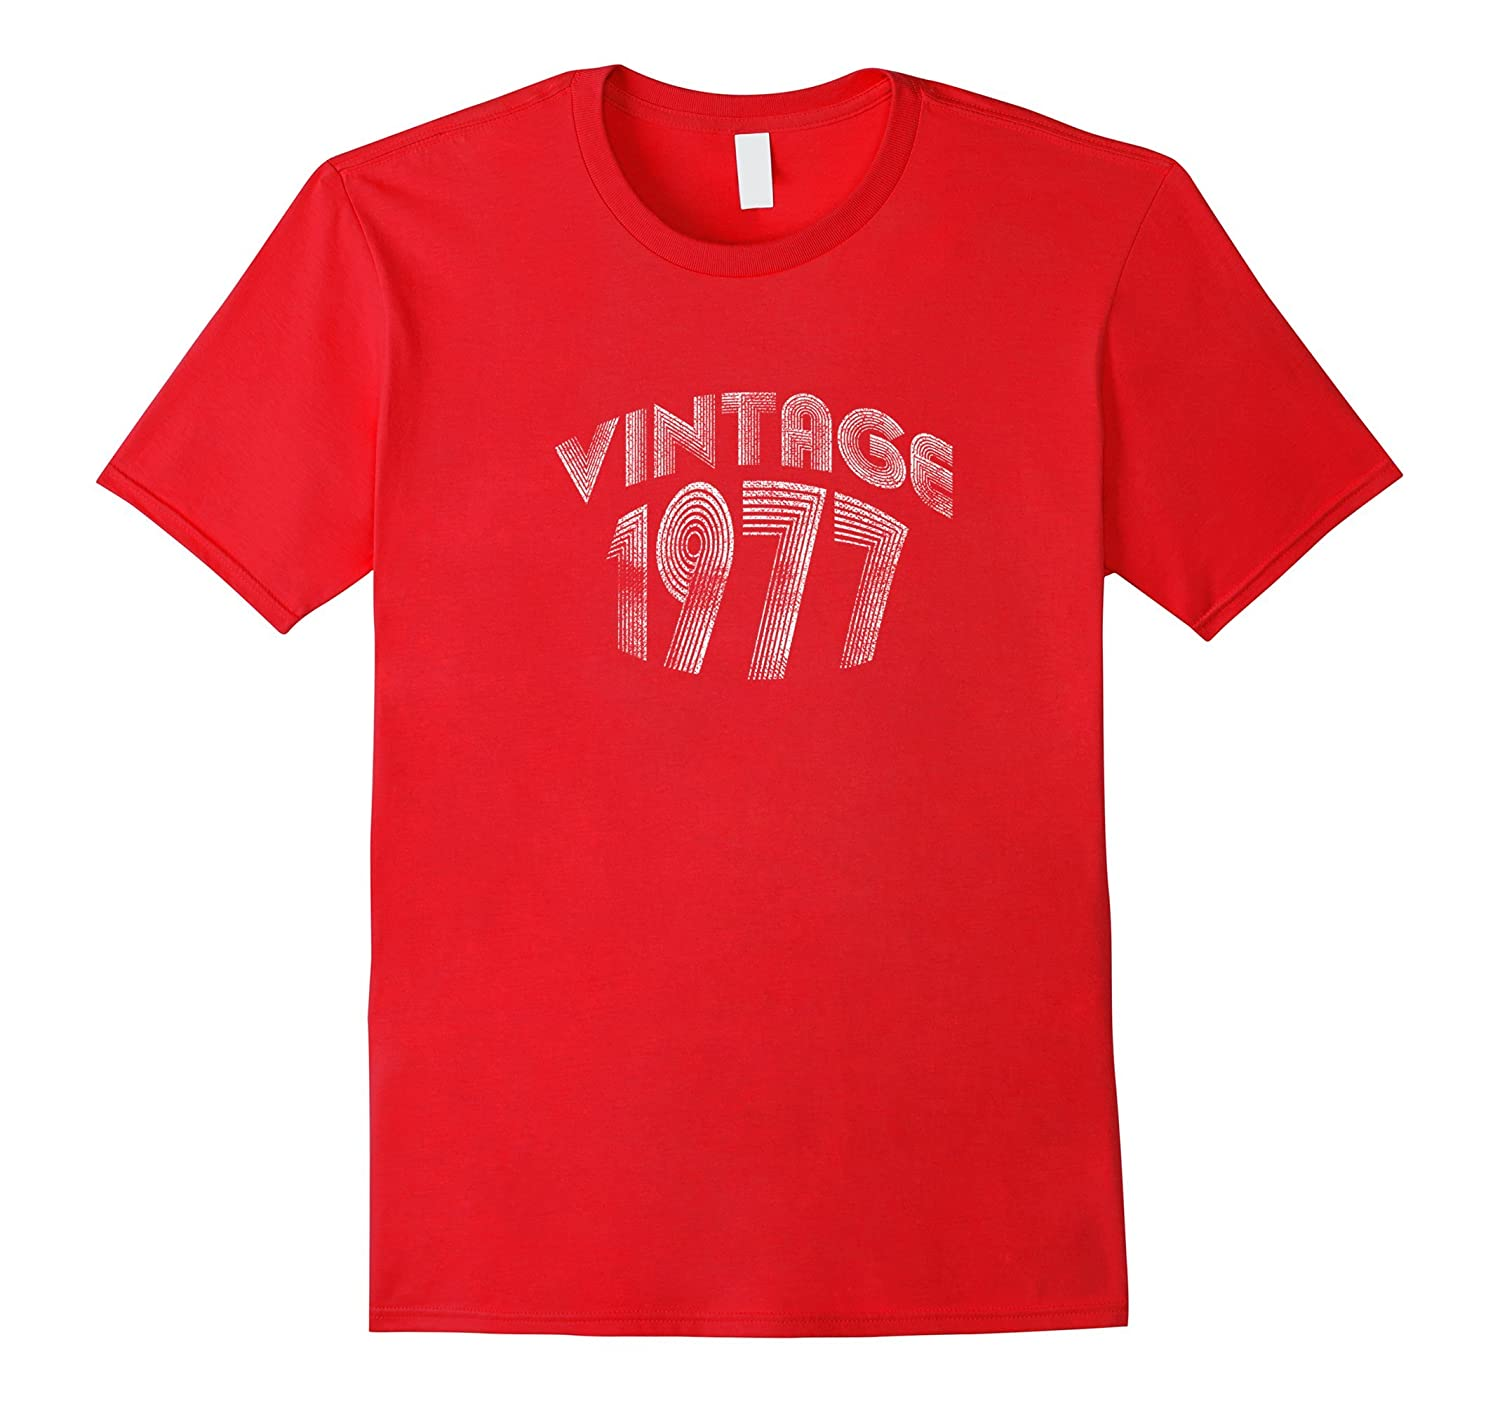 40th Birthday Shirt Vintage 1977 Retro Look Mens & Womens-TH